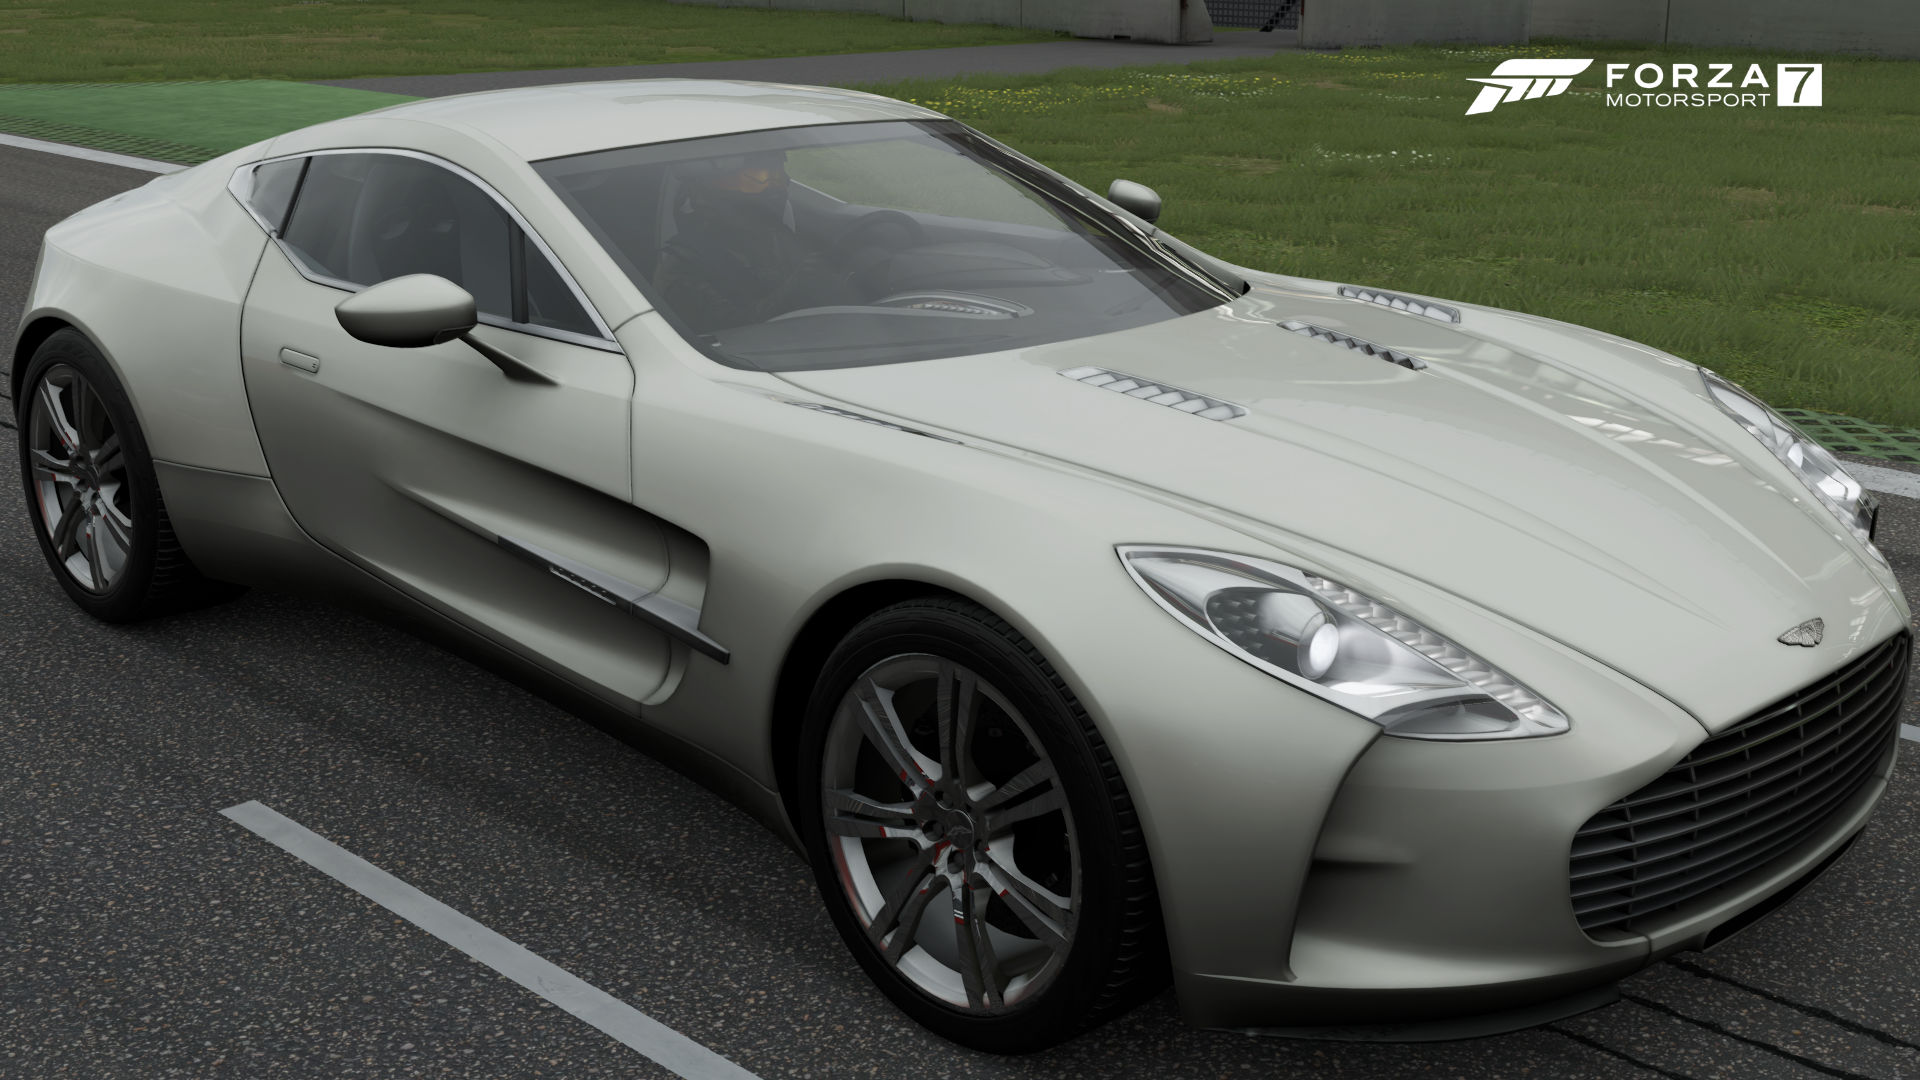 Aston Martin One 77 Forza Motorsport Wiki Fandom Powered By Wikia